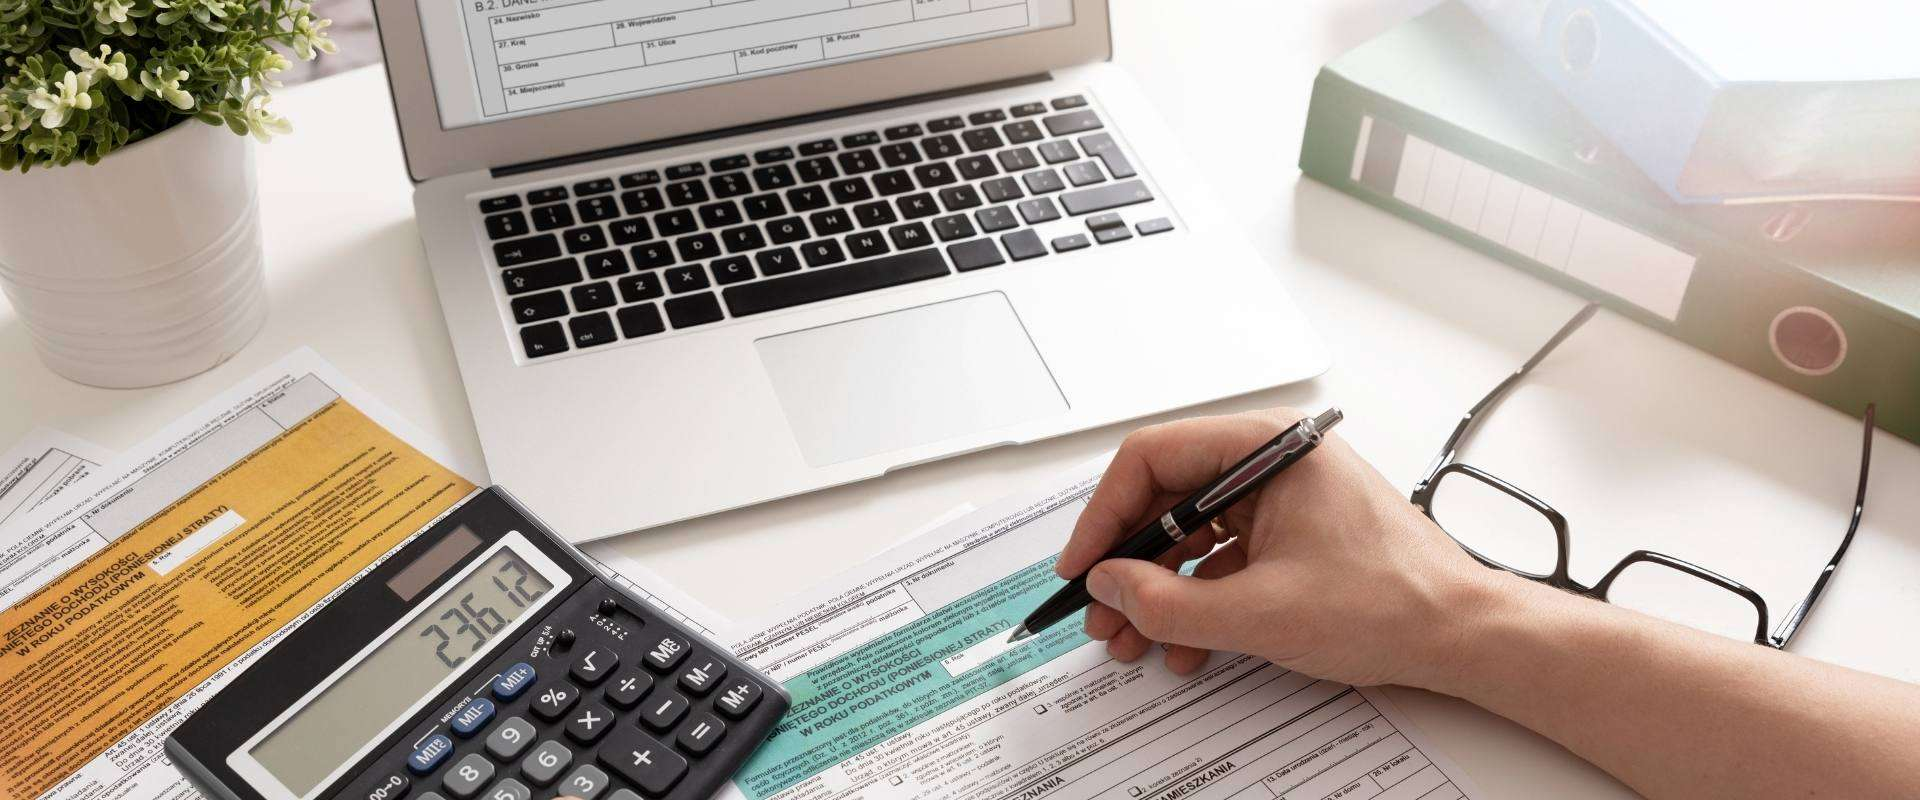 How to Avoid W-2 Form Errors